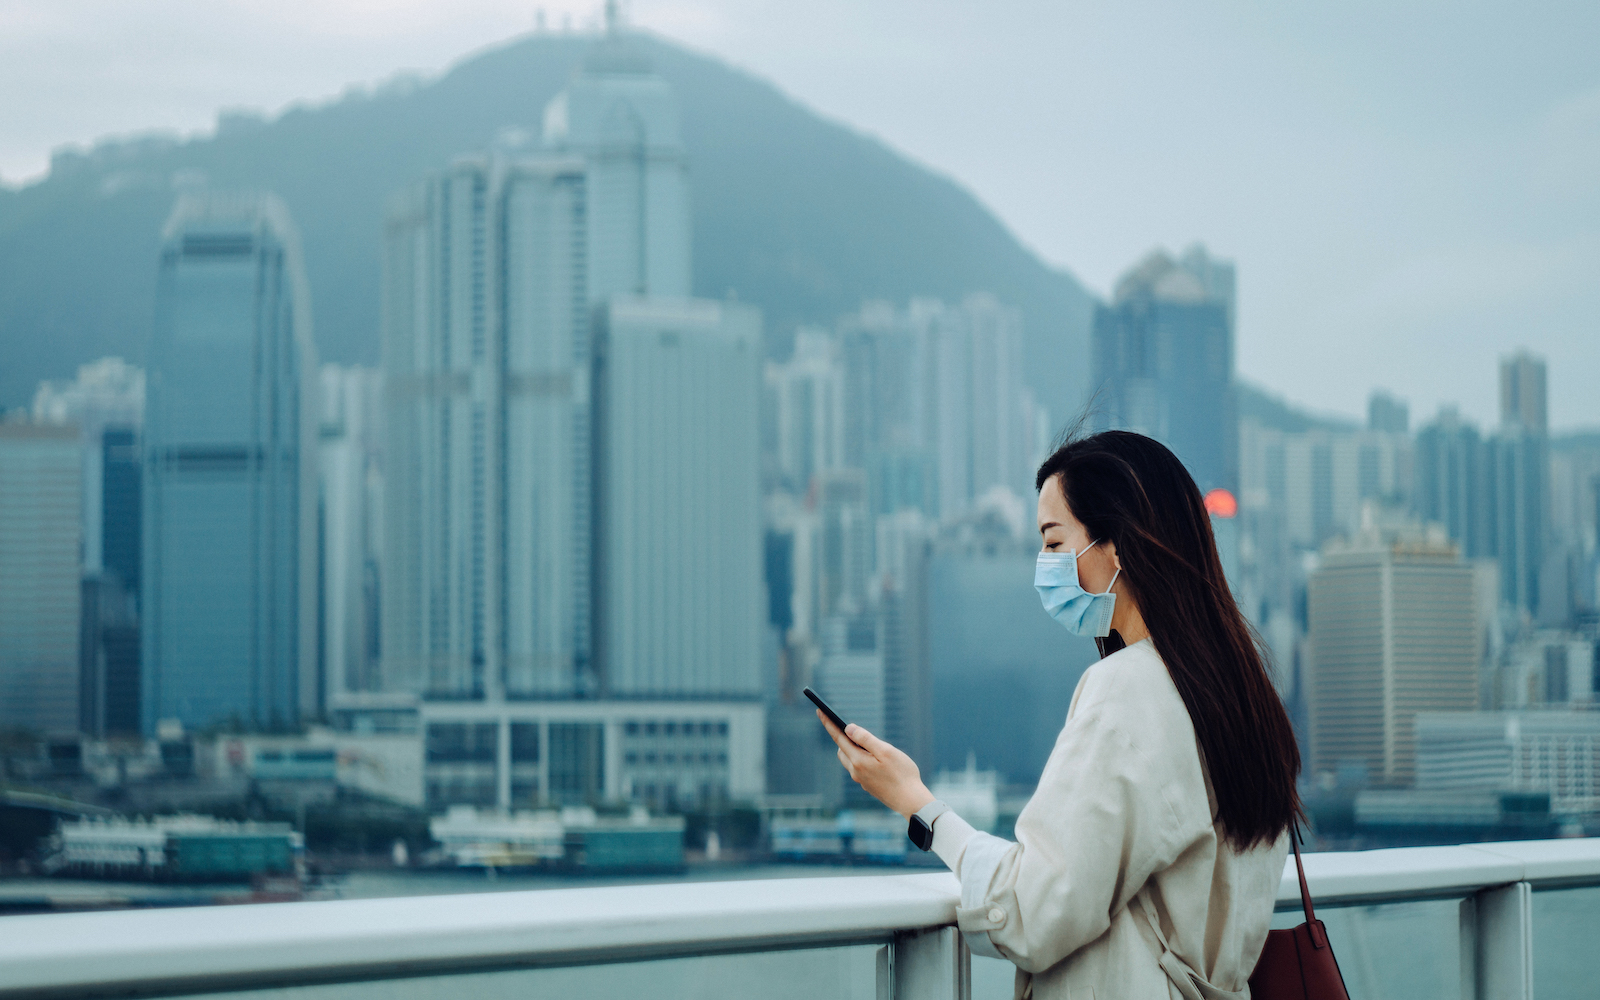 Young Asian woman with surgical face mask   to prevent the spread of viruses during the Covid-19 health crisis and using smartphone against the iconic city skyline of Hong Kong